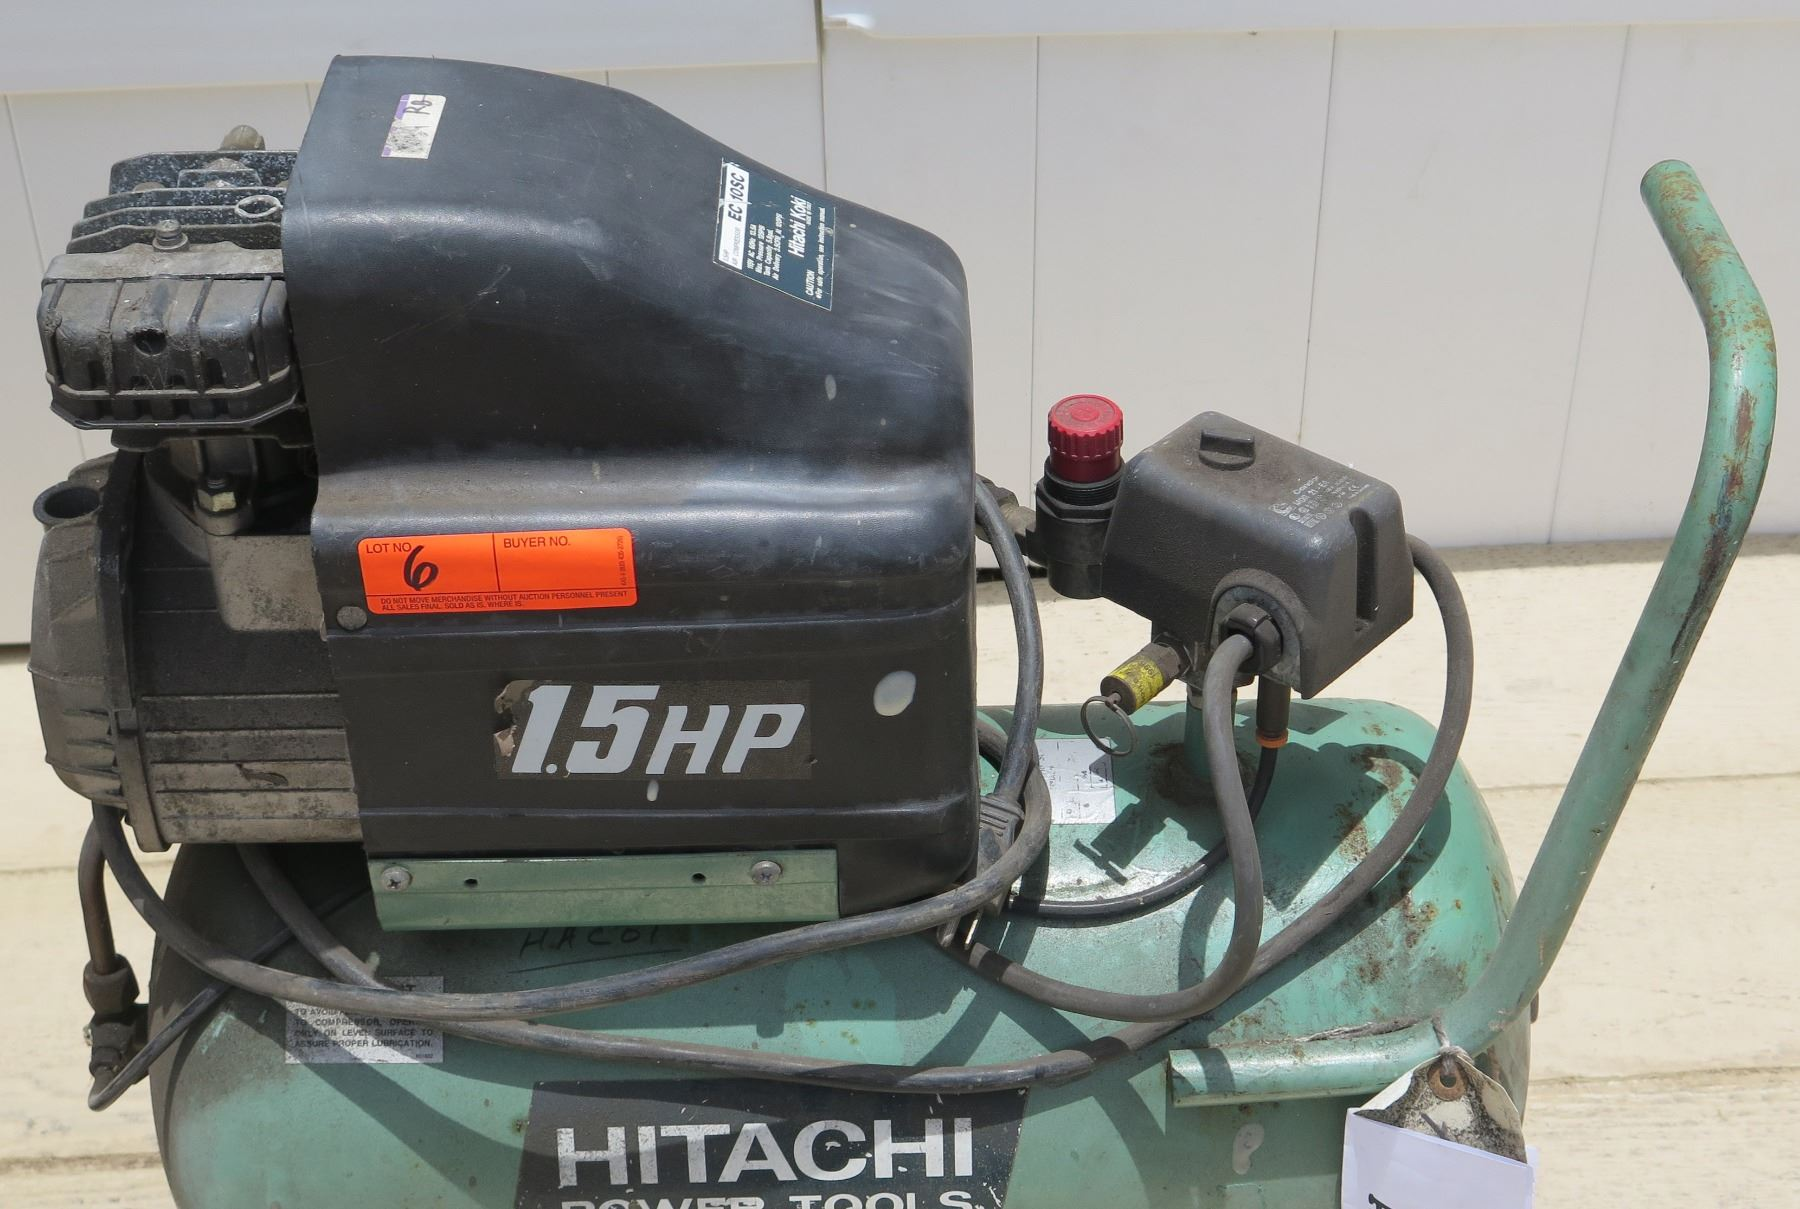 hight resolution of  image 2 tools hitachi koki ec 10sc and stanley bostitch cwc156 1 5 hp air